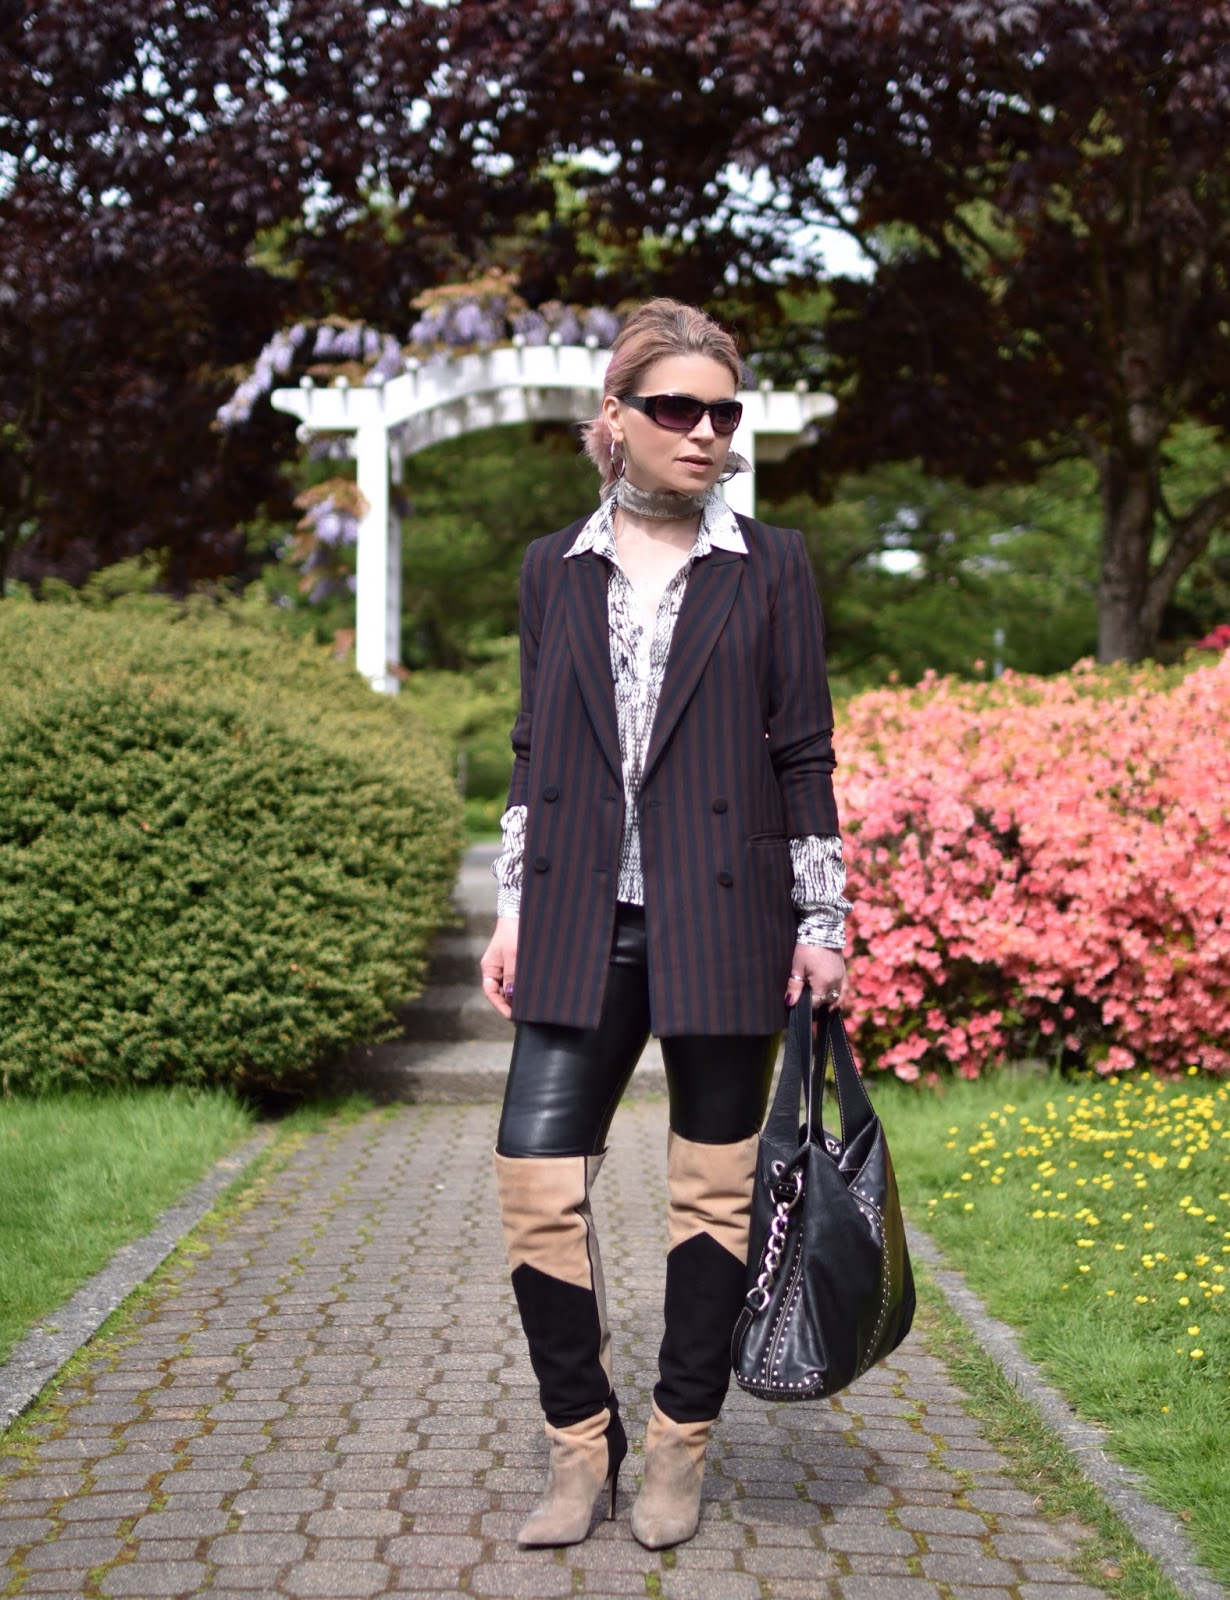 Boots and chapel:  Styling over-the-knee boots with a slouchy suit jacket and vegan leather leggings